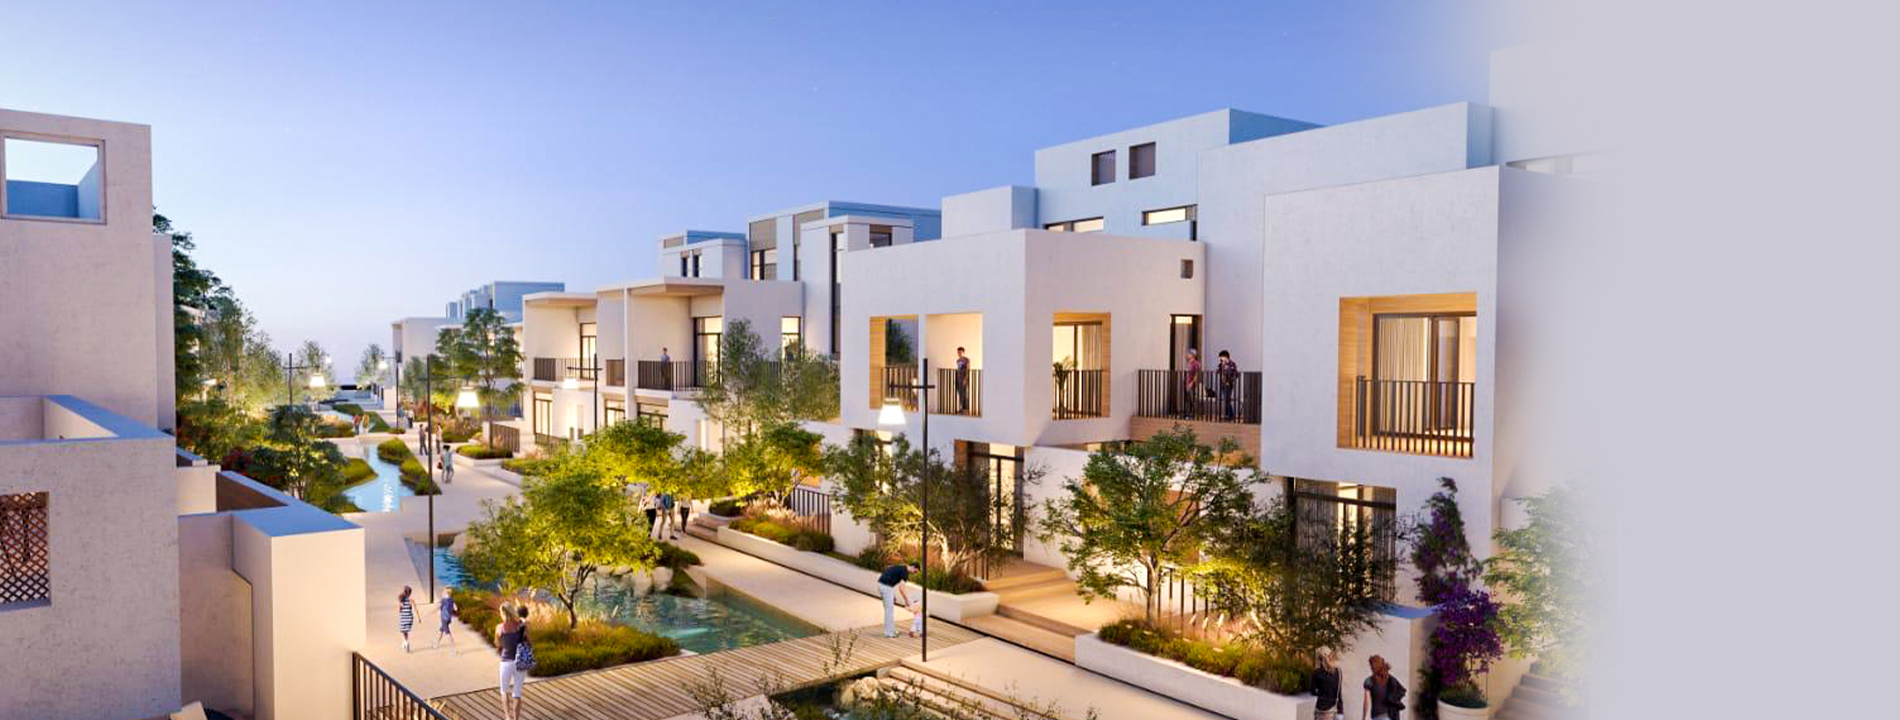 BLISS Townhouse in Arabian Ranches III